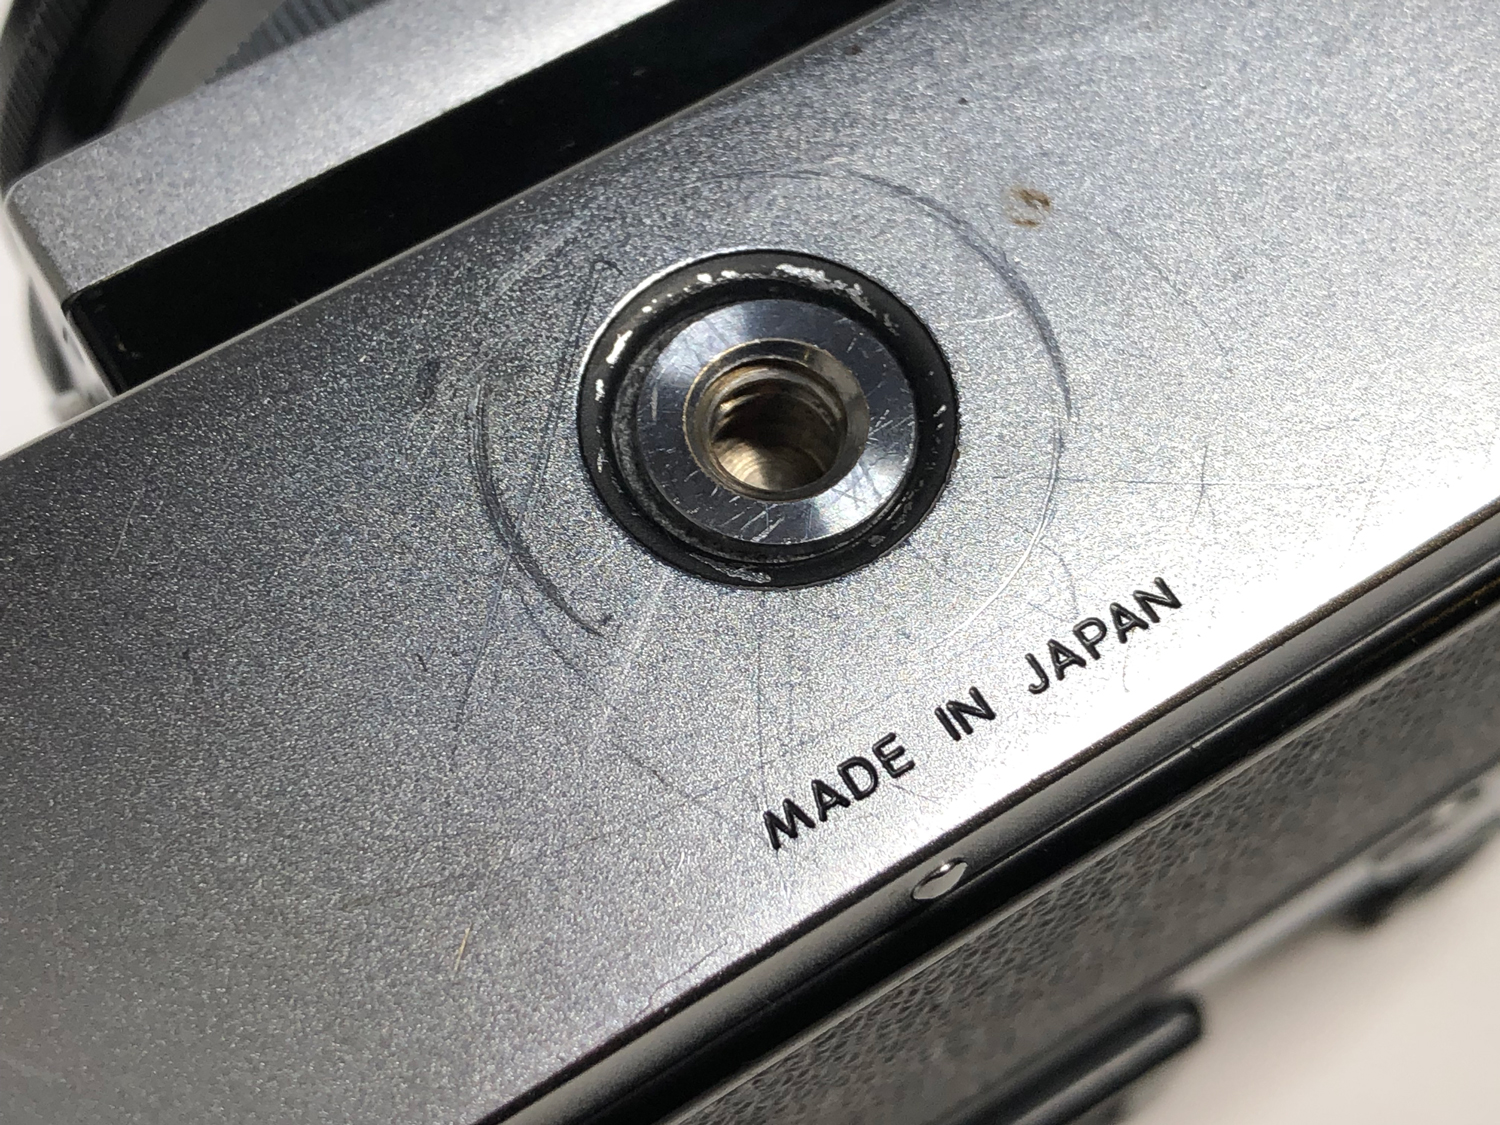 Classic Camera Review The Original Nikon Fs Bh Explora Plate Circuitry Location Dallas Fort Worth Area Current Electro Word Japan Is Engraved On Lock Latch Of Back First Few Thousand But Was Moved To Center Bottom